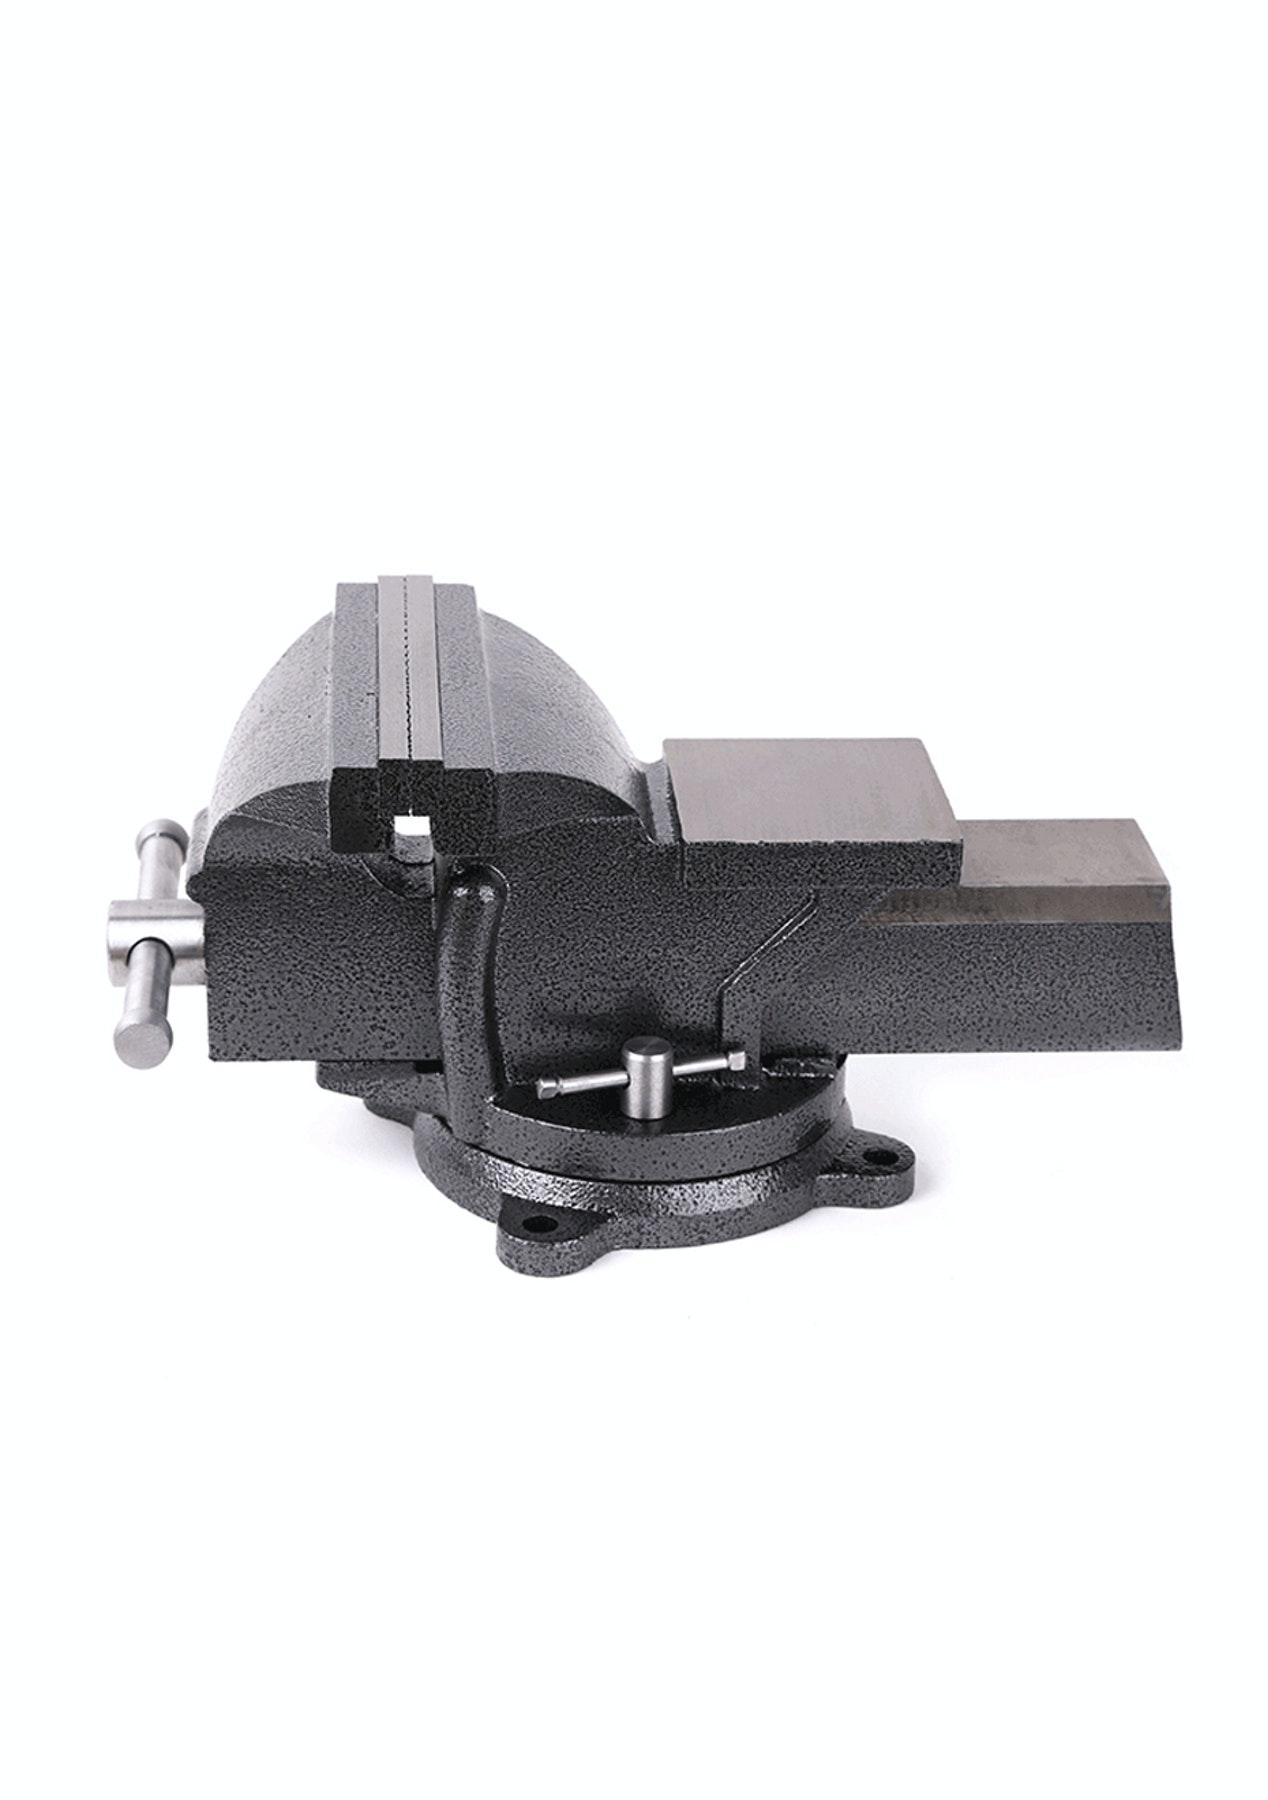 75mm General Purpose Bench Vise With Anvil Father S Day Gift Ideas